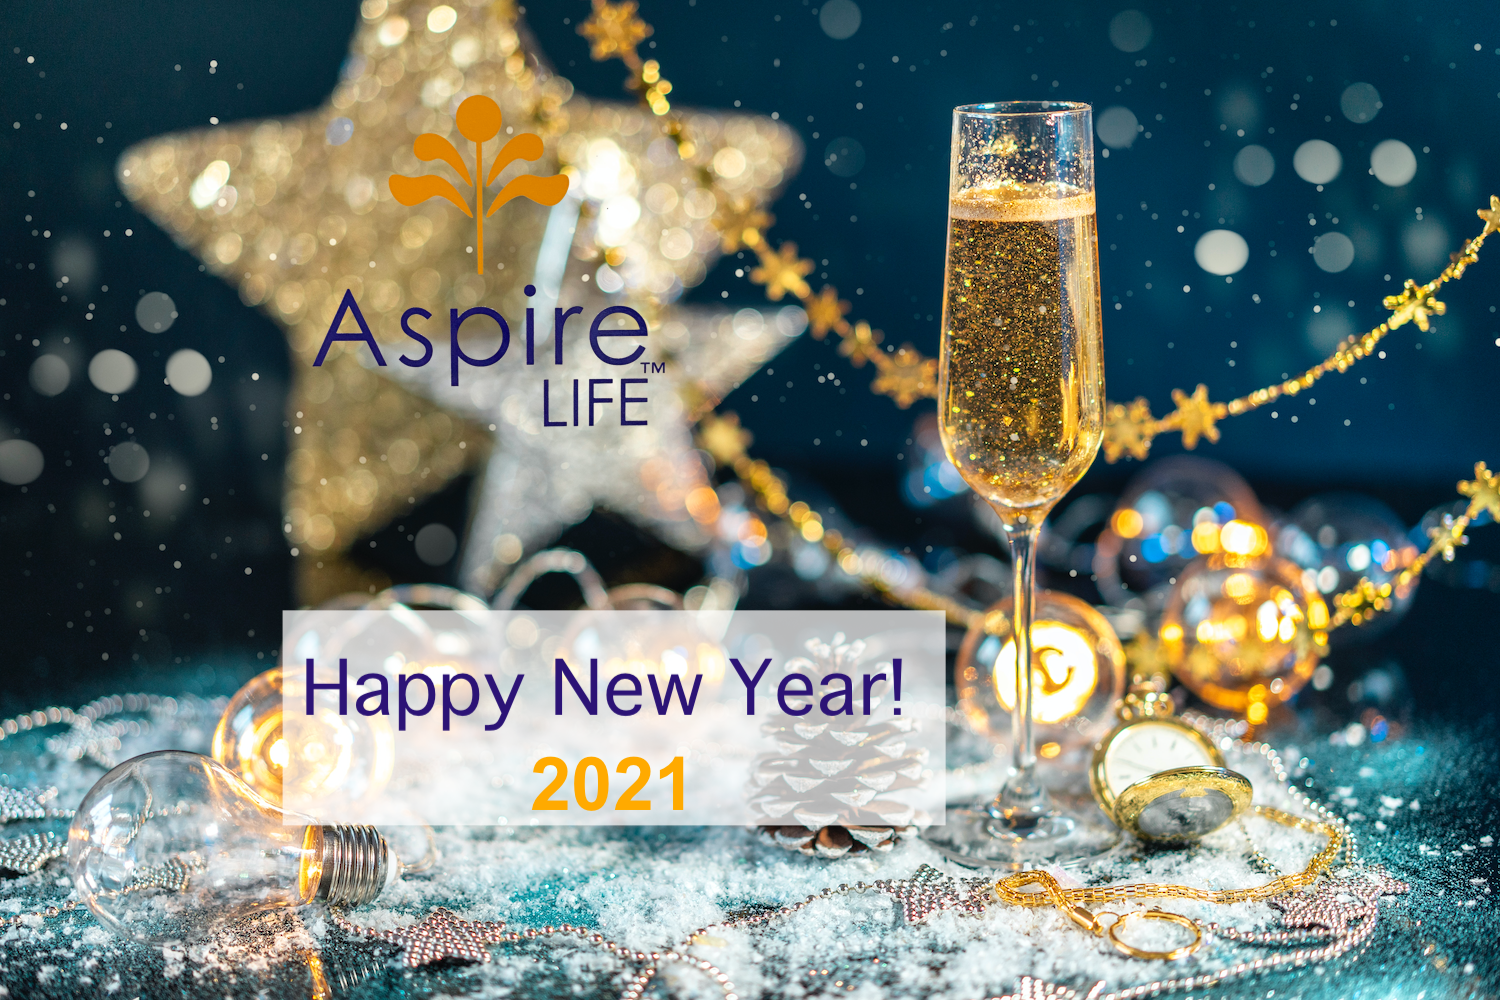 Wine Glass and AspireLIFE Logo with Stars